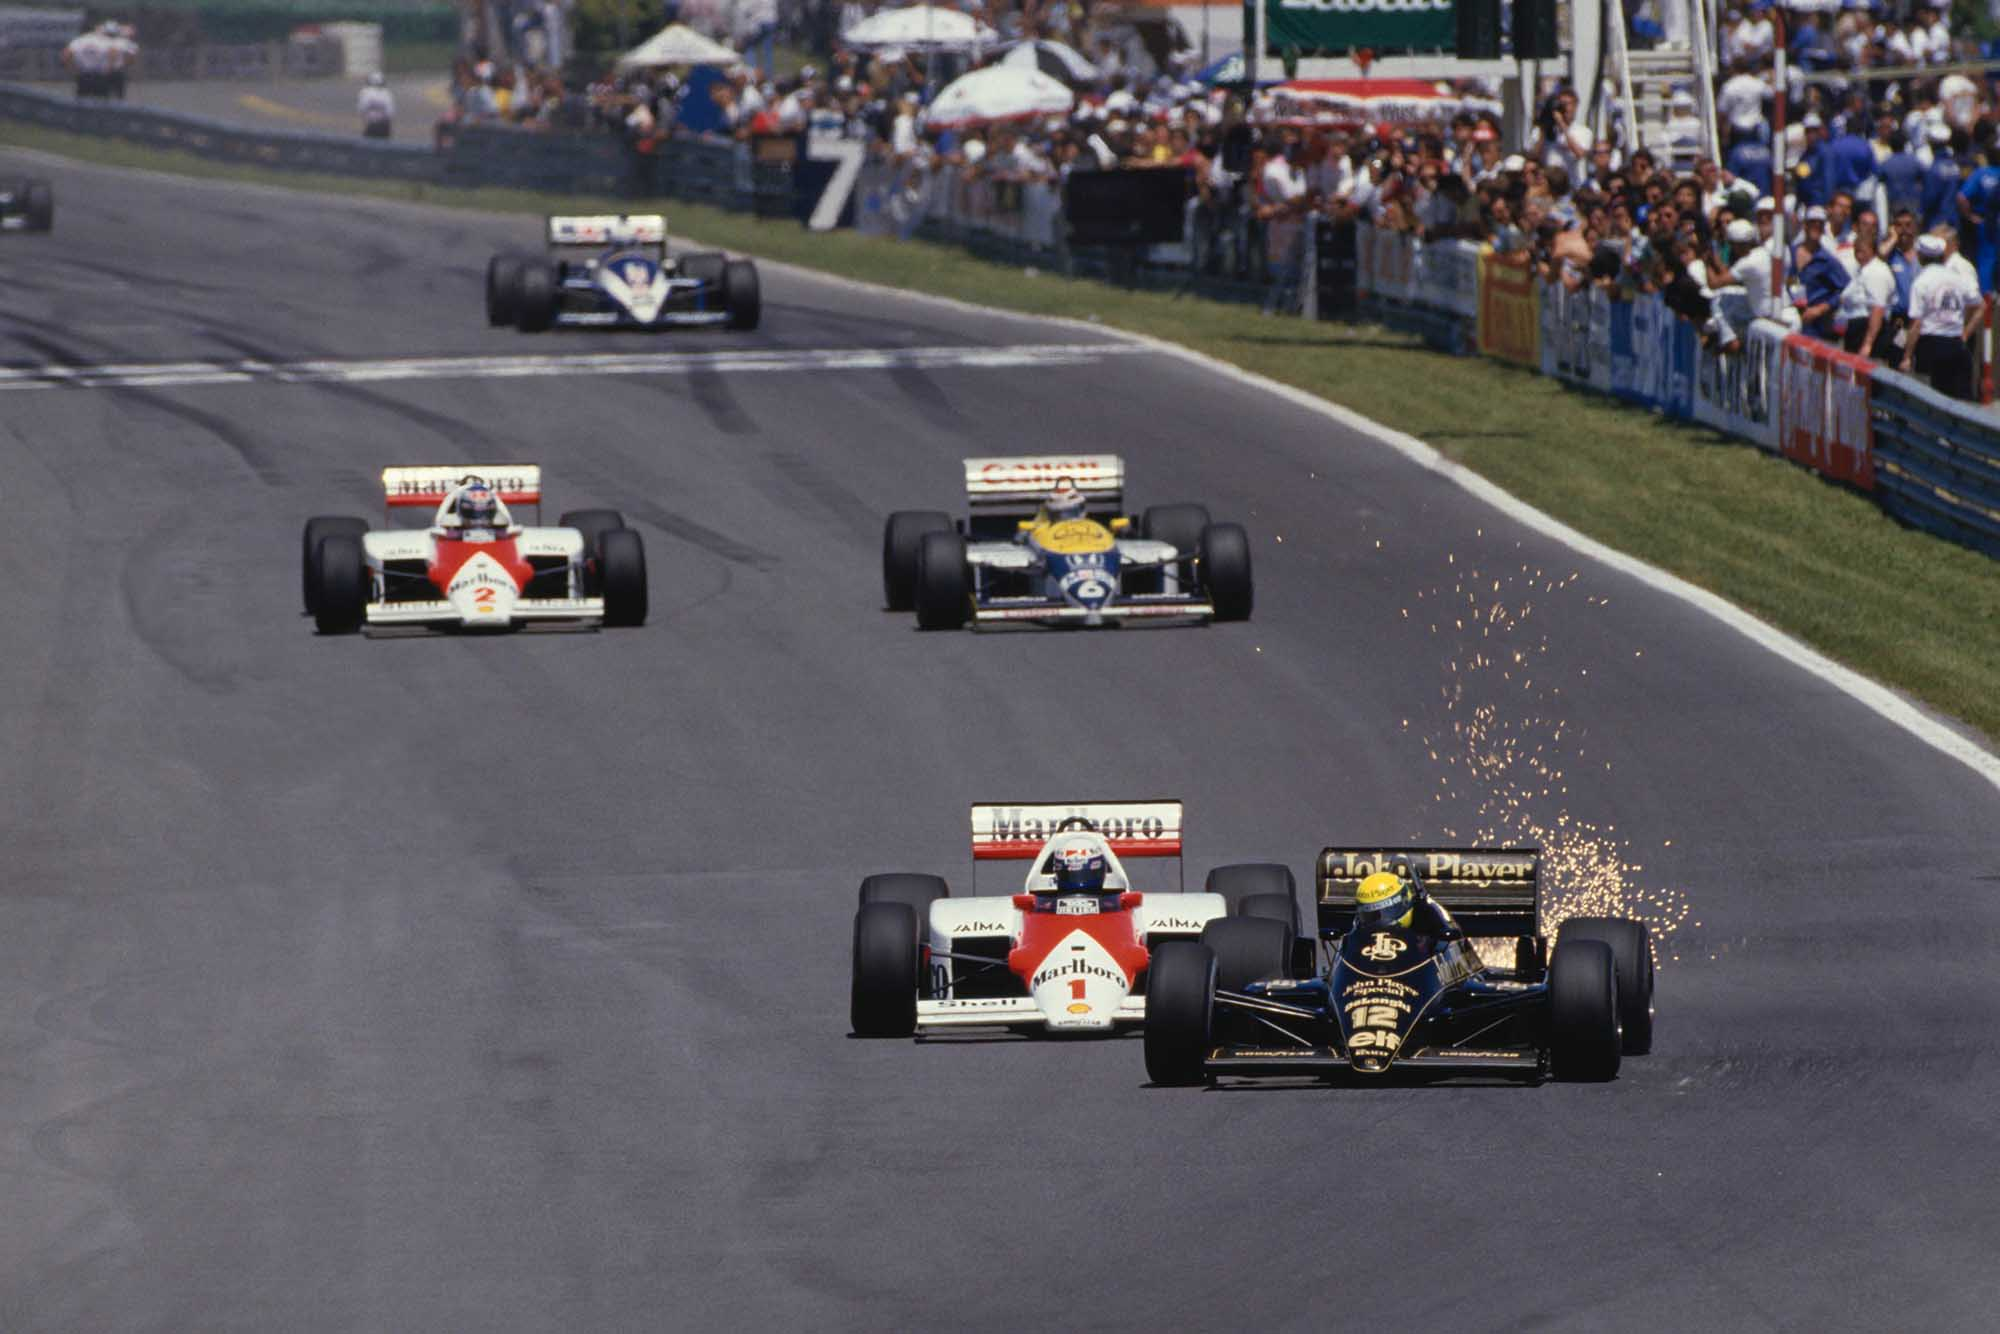 Ayrton Senna (Lotus-Renault) and Alain Prost (McLaren-Porsche) battle at 1985 Canadian Grand Prix Montreal